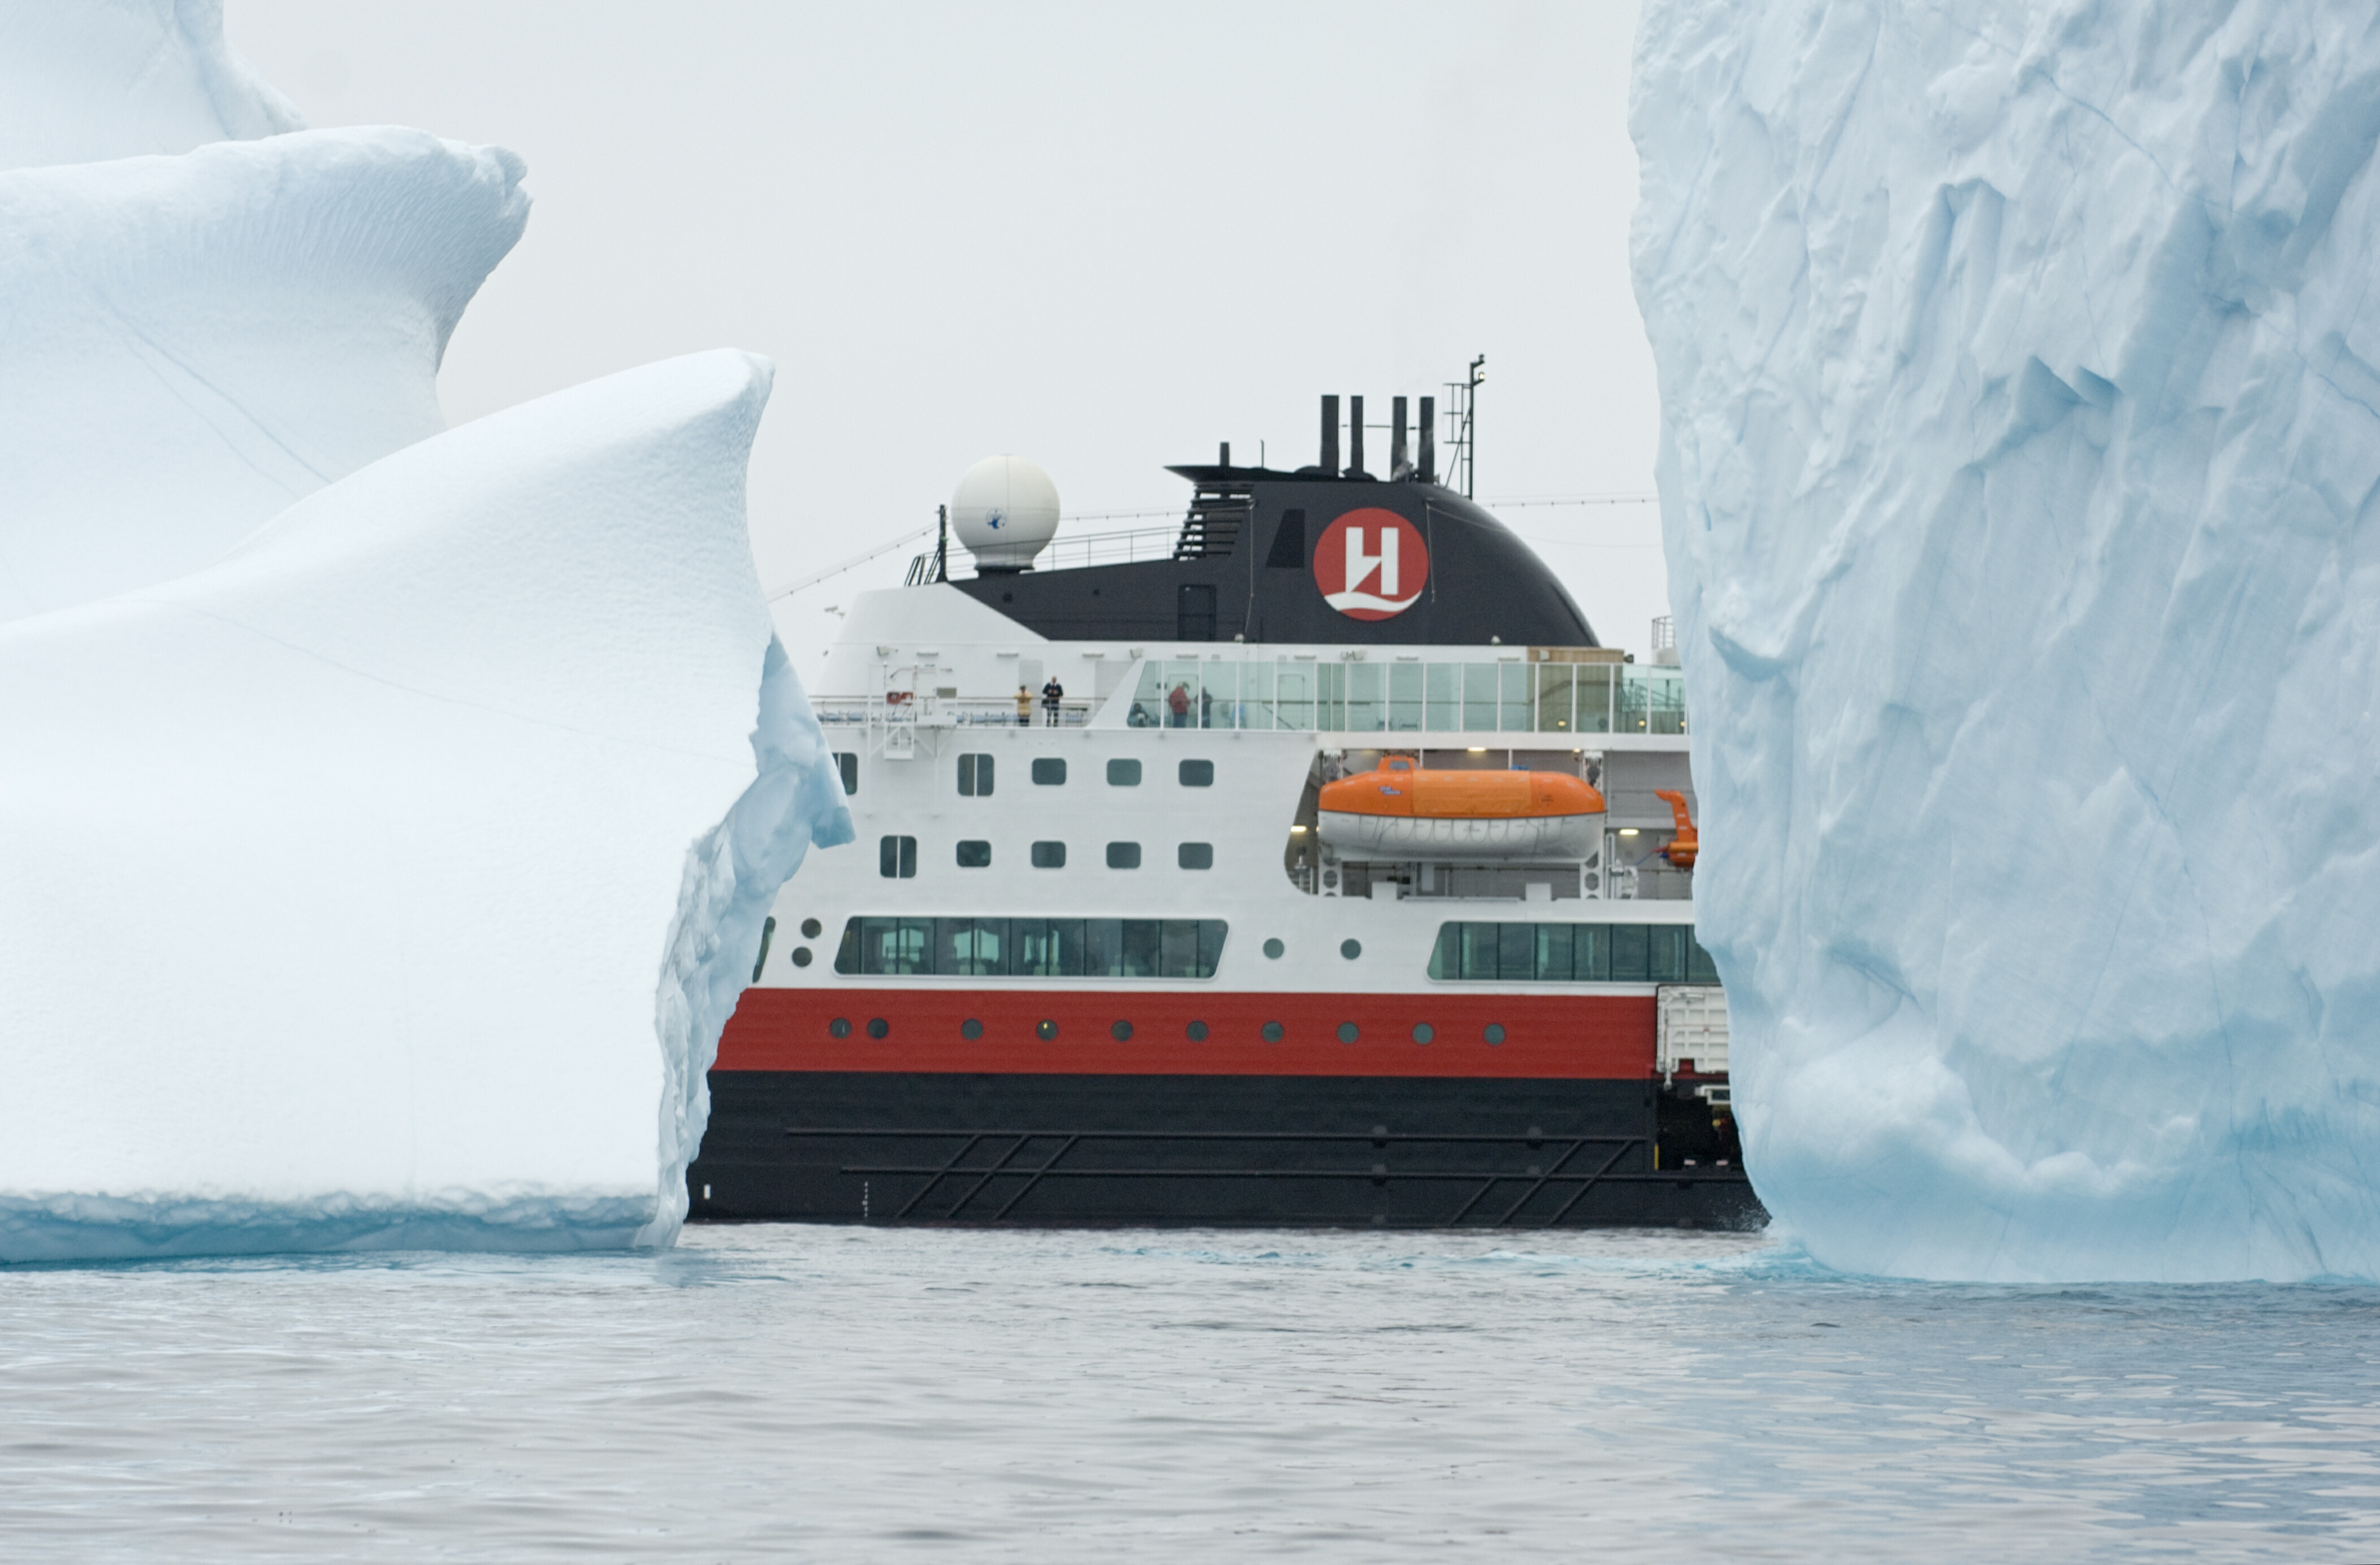 Ms Fram On Greenland Westcoast Cruise To The North